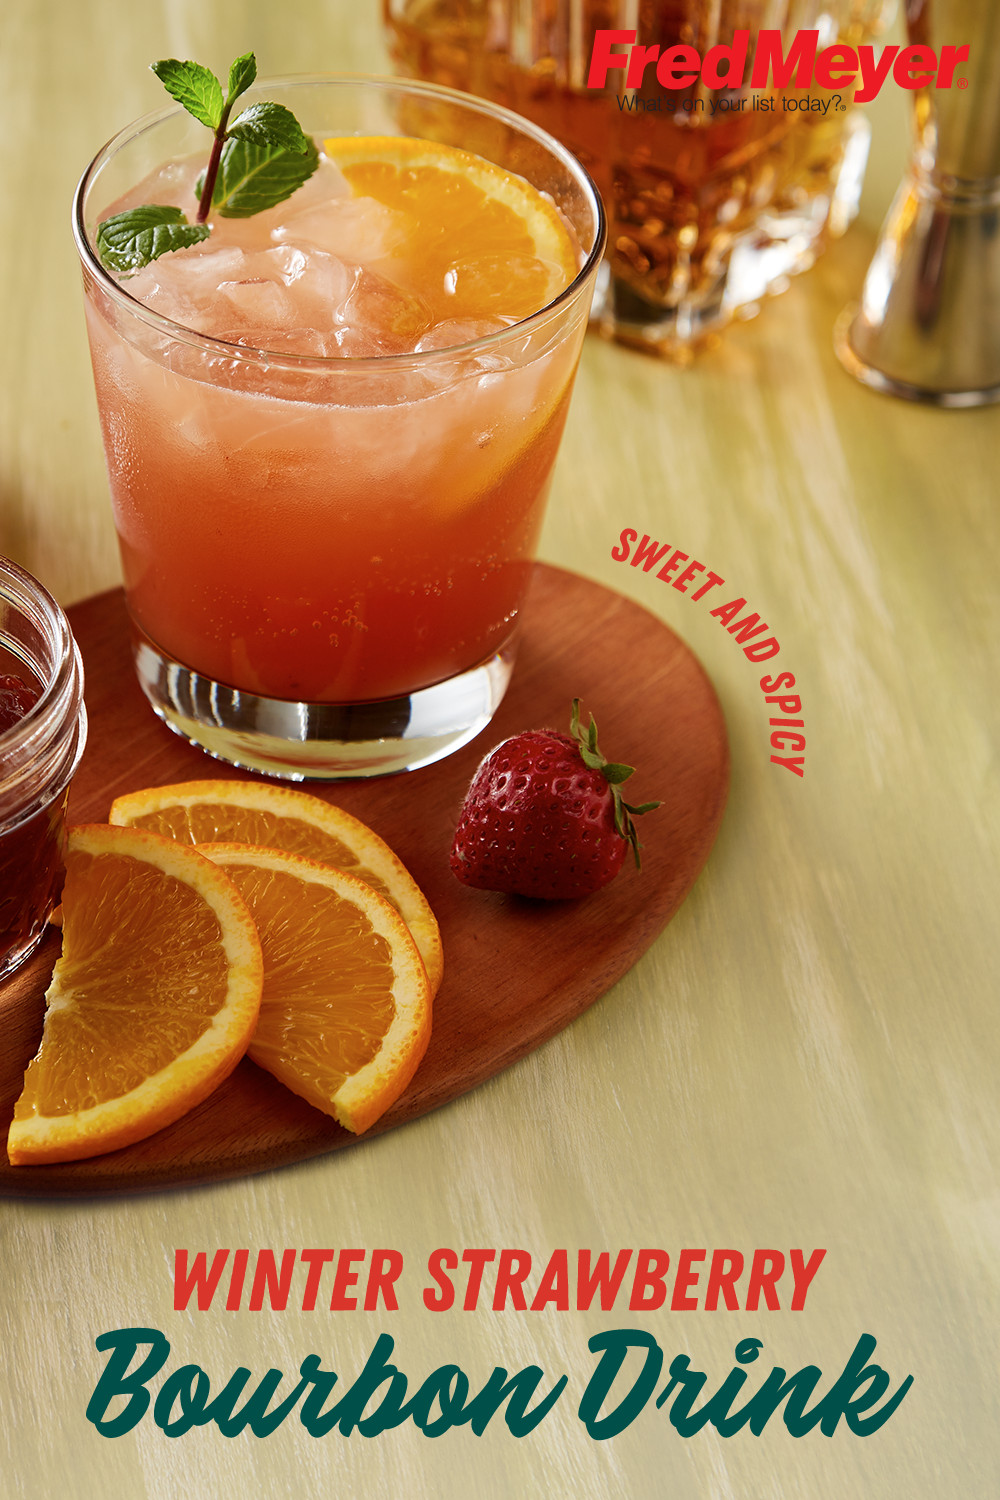 Bourbon Drinks For Winter  Winter Strawberry and Bourbon Drink Recipe